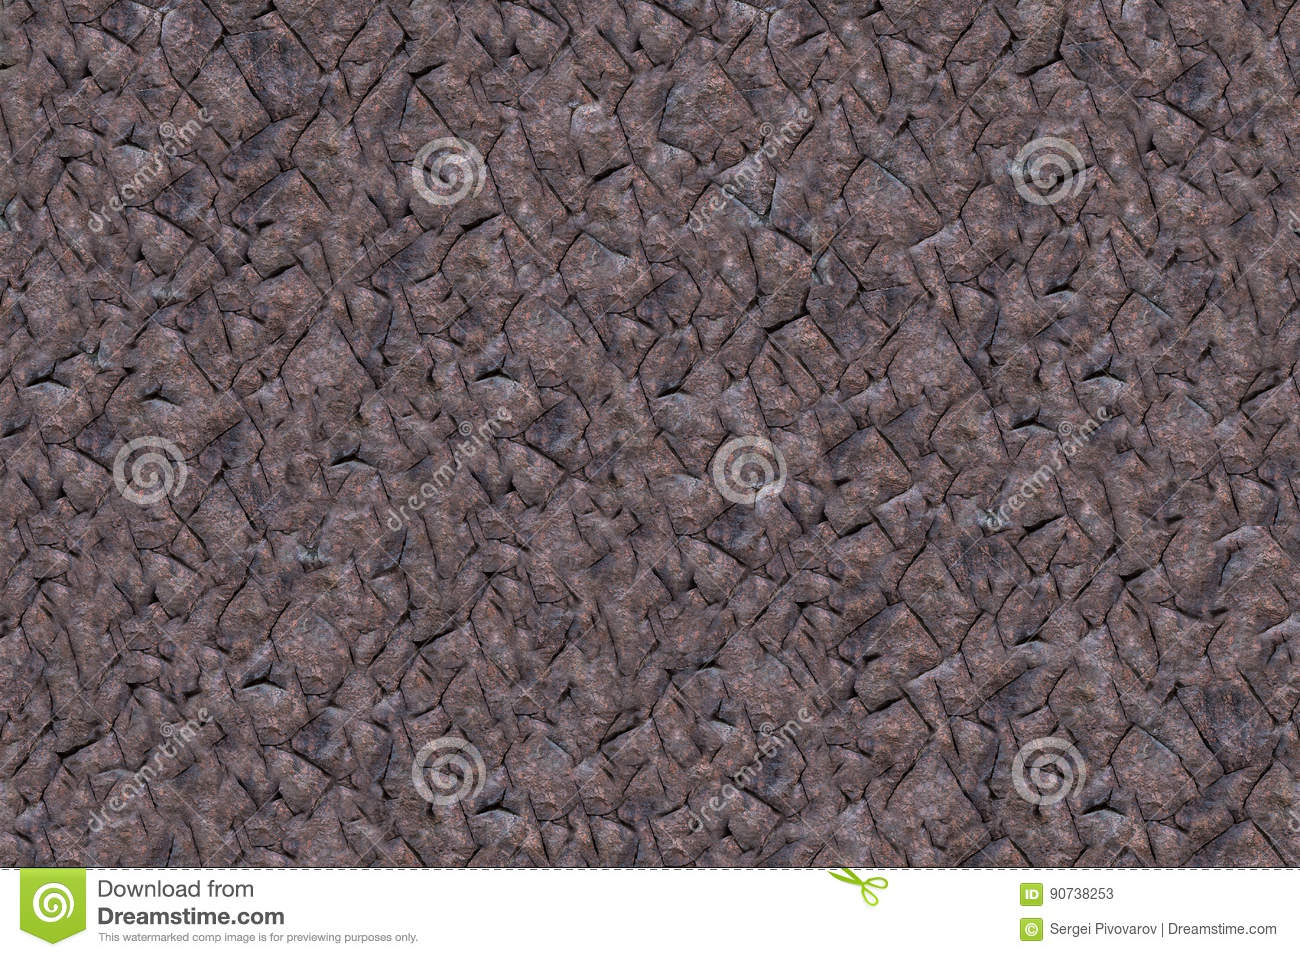 Abstract natural background geometric pattern lines made of dark stones